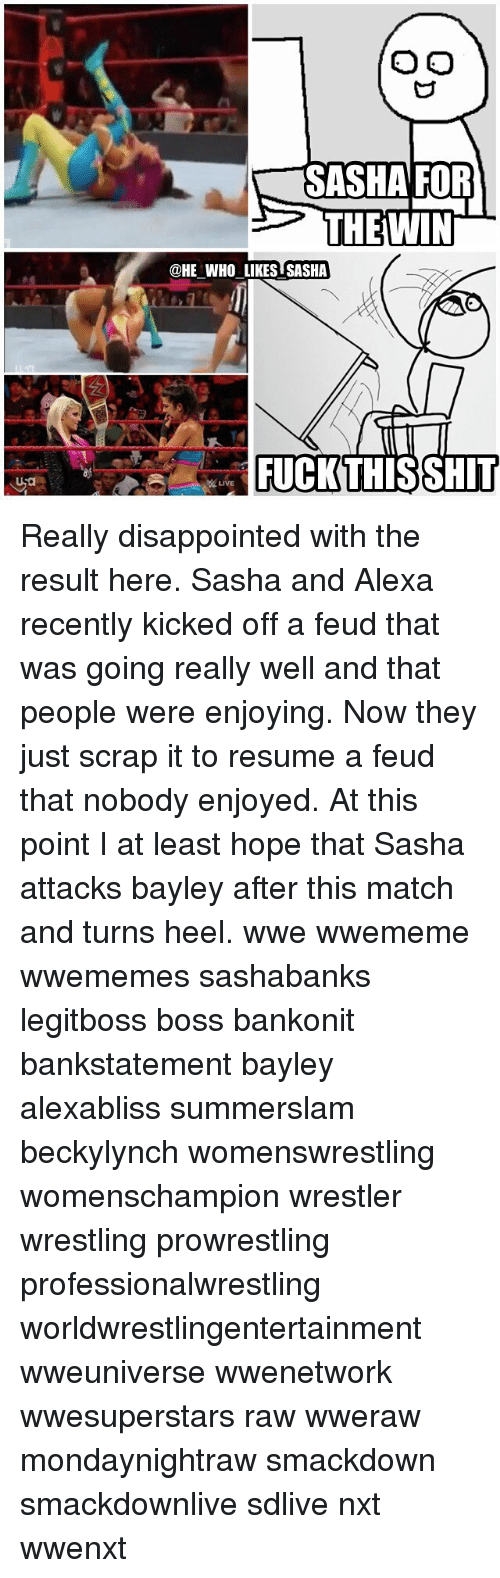 smackdown: SASHA FOR  THEWIN  @HE WHO LIKES SASHA  FUCKTHISSHIT  LIVE Really disappointed with the result here. Sasha and Alexa recently kicked off a feud that was going really well and that people were enjoying. Now they just scrap it to resume a feud that nobody enjoyed. At this point I at least hope that Sasha attacks bayley after this match and turns heel. wwe wwememe wwememes sashabanks legitboss boss bankonit bankstatement bayley alexabliss summerslam beckylynch womenswrestling womenschampion wrestler wrestling prowrestling professionalwrestling worldwrestlingentertainment wweuniverse wwenetwork wwesuperstars raw wweraw mondaynightraw smackdown smackdownlive sdlive nxt wwenxt